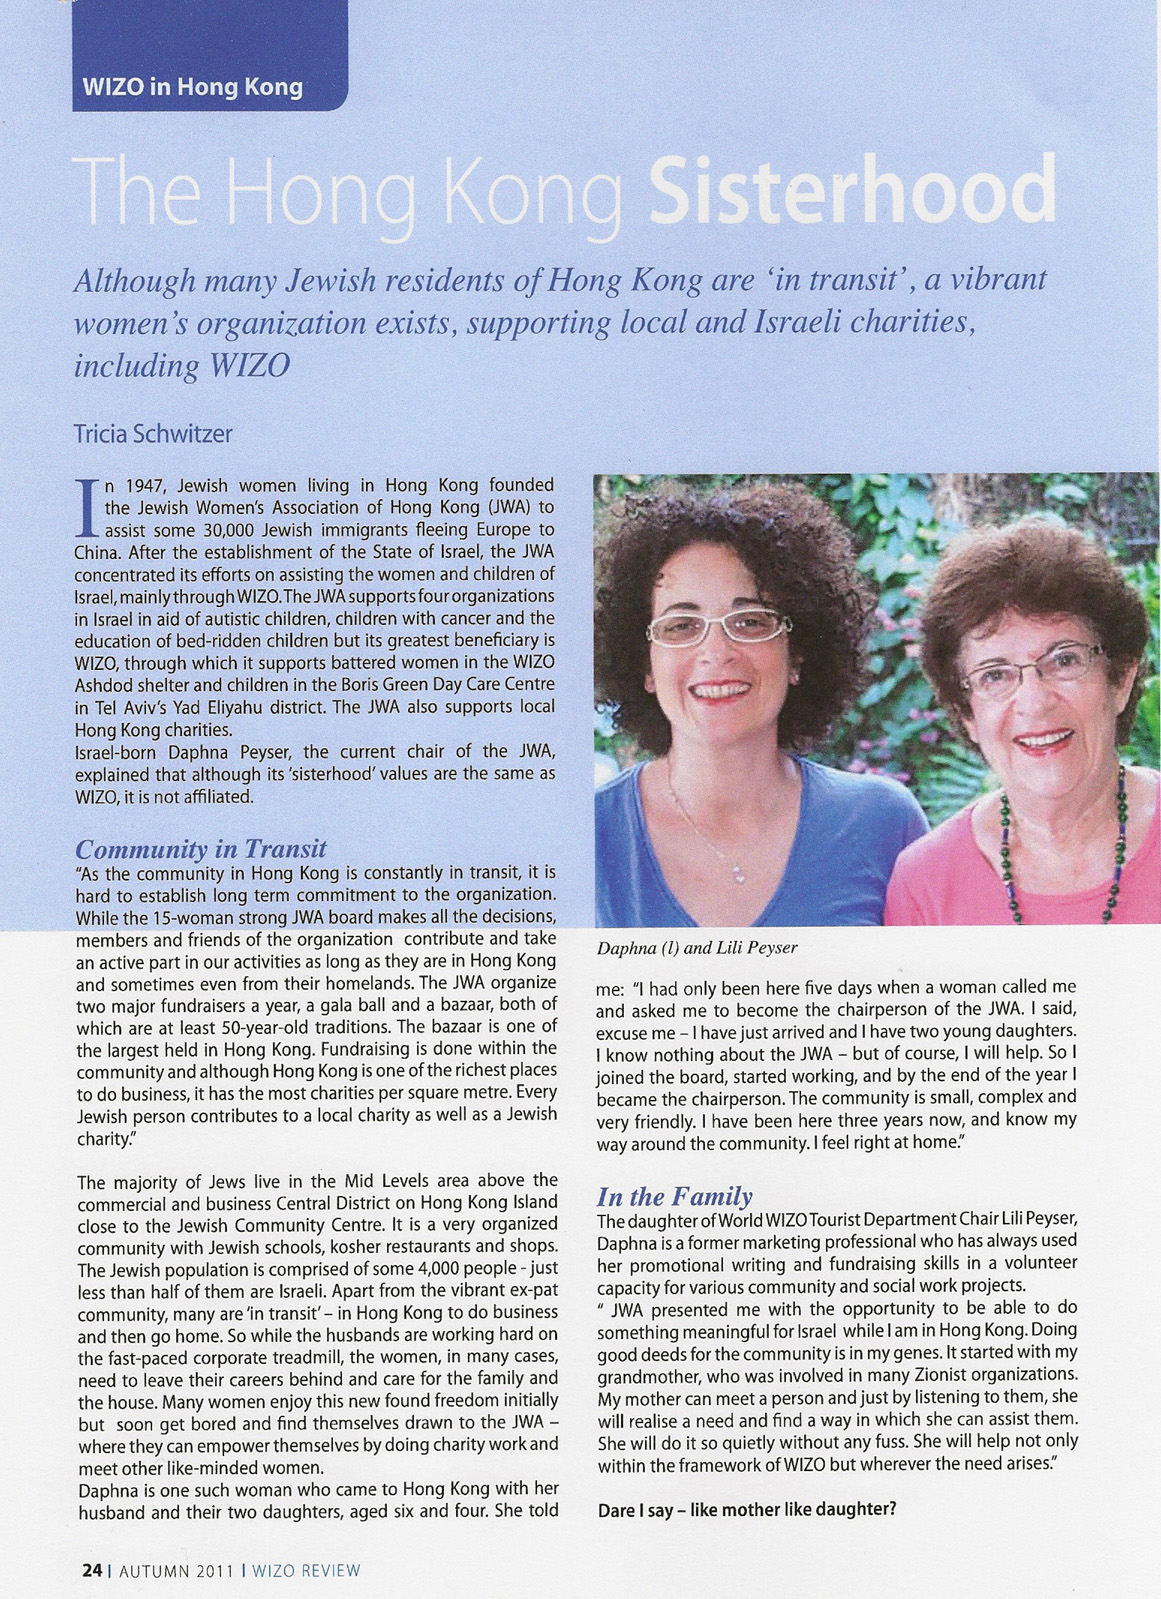 WIZO Review - August 2011